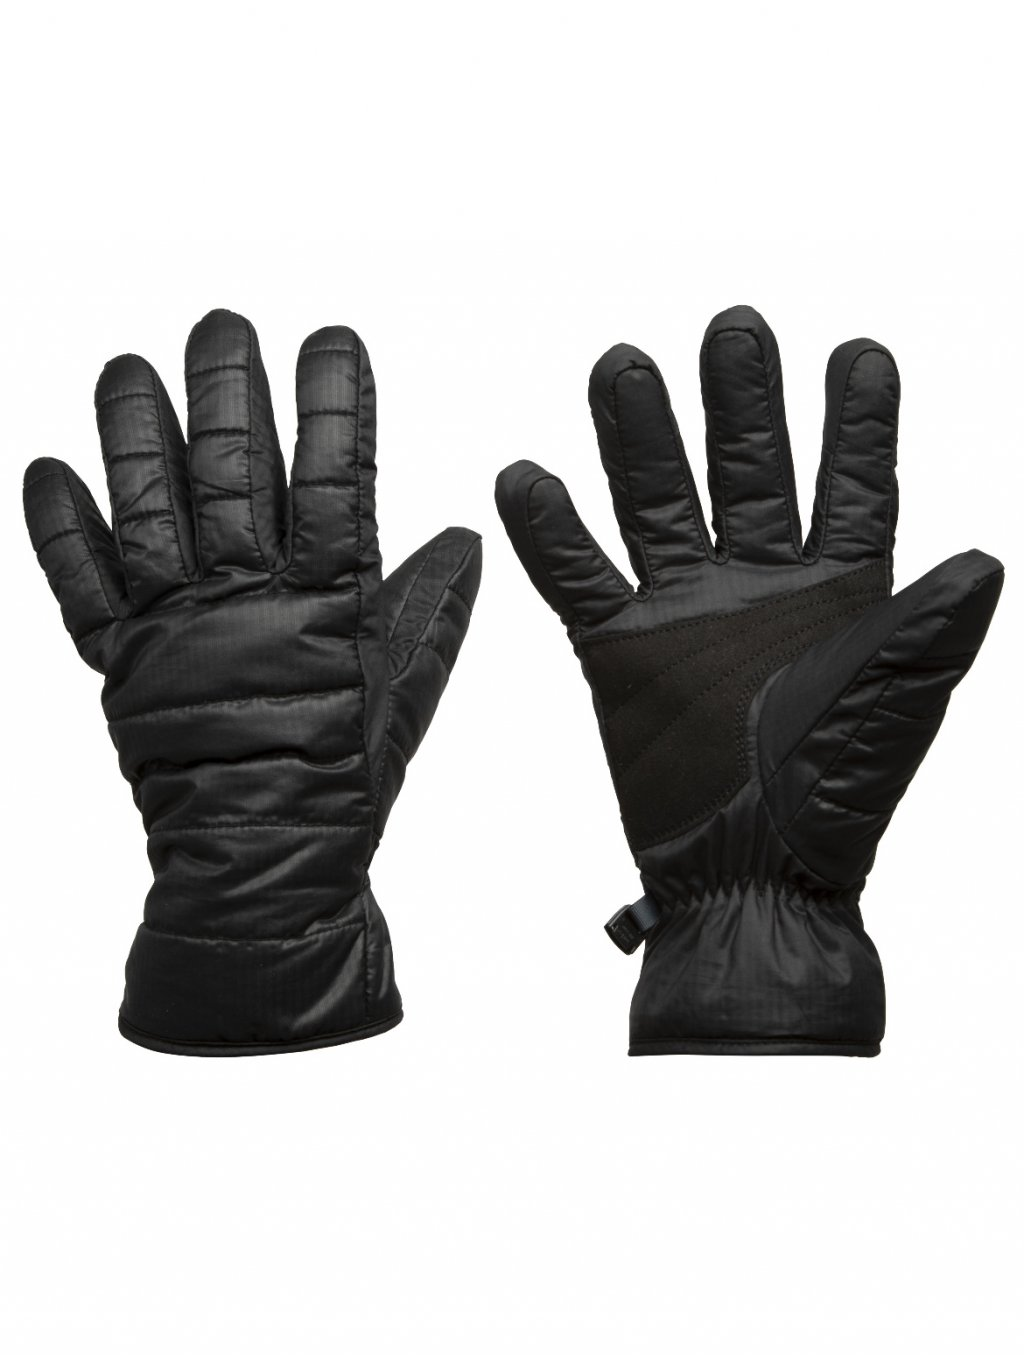 FW20 ACCESSORIES UNISEX COLLINGWOOD GLOVES 105231001 1